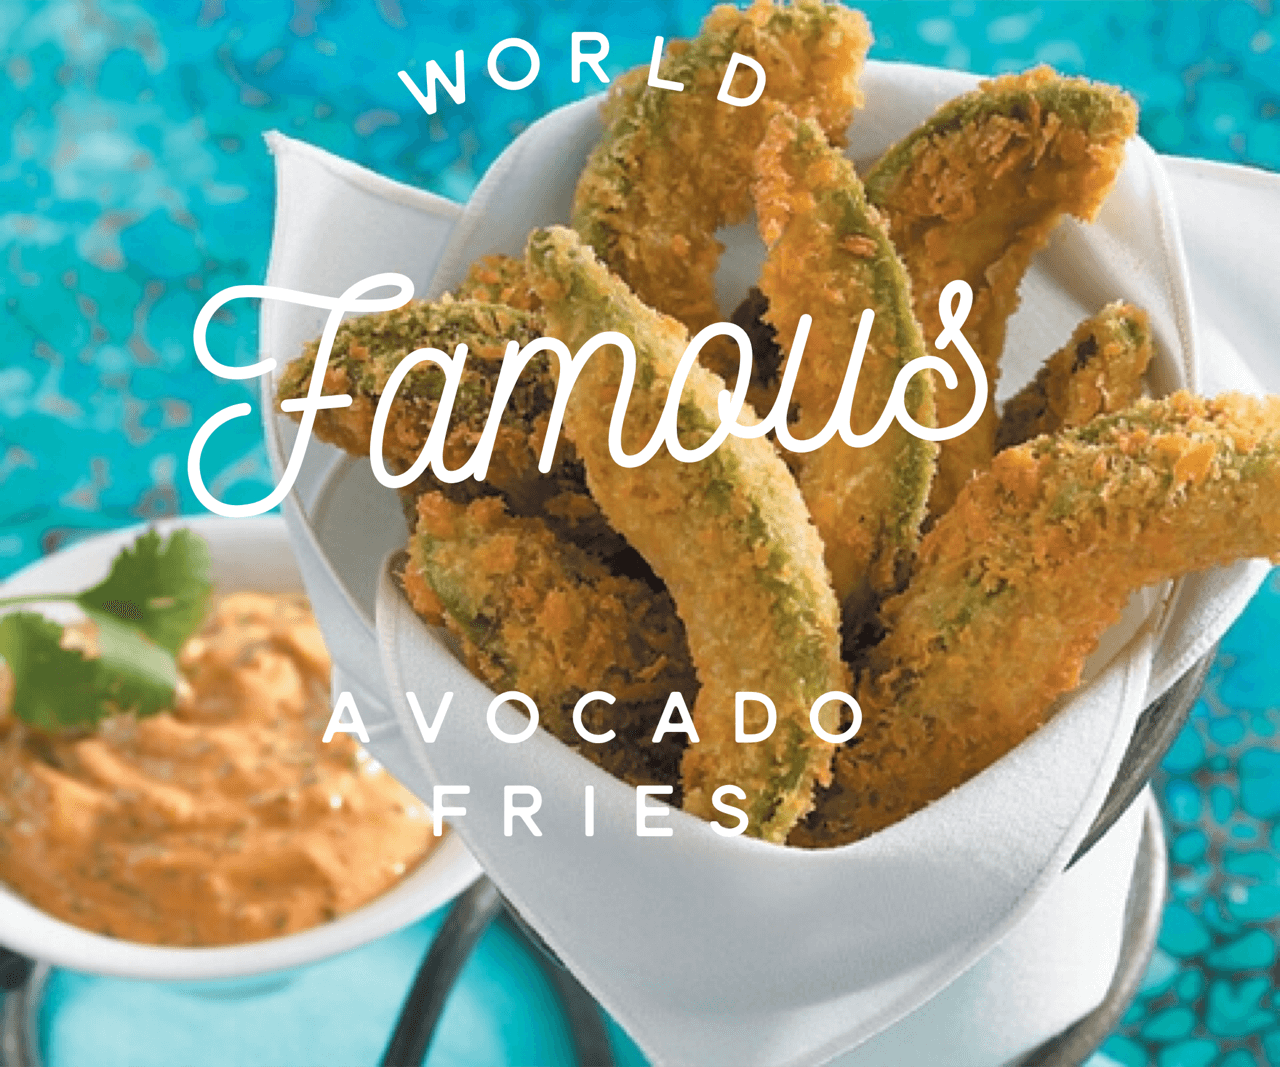 Avocado-fries